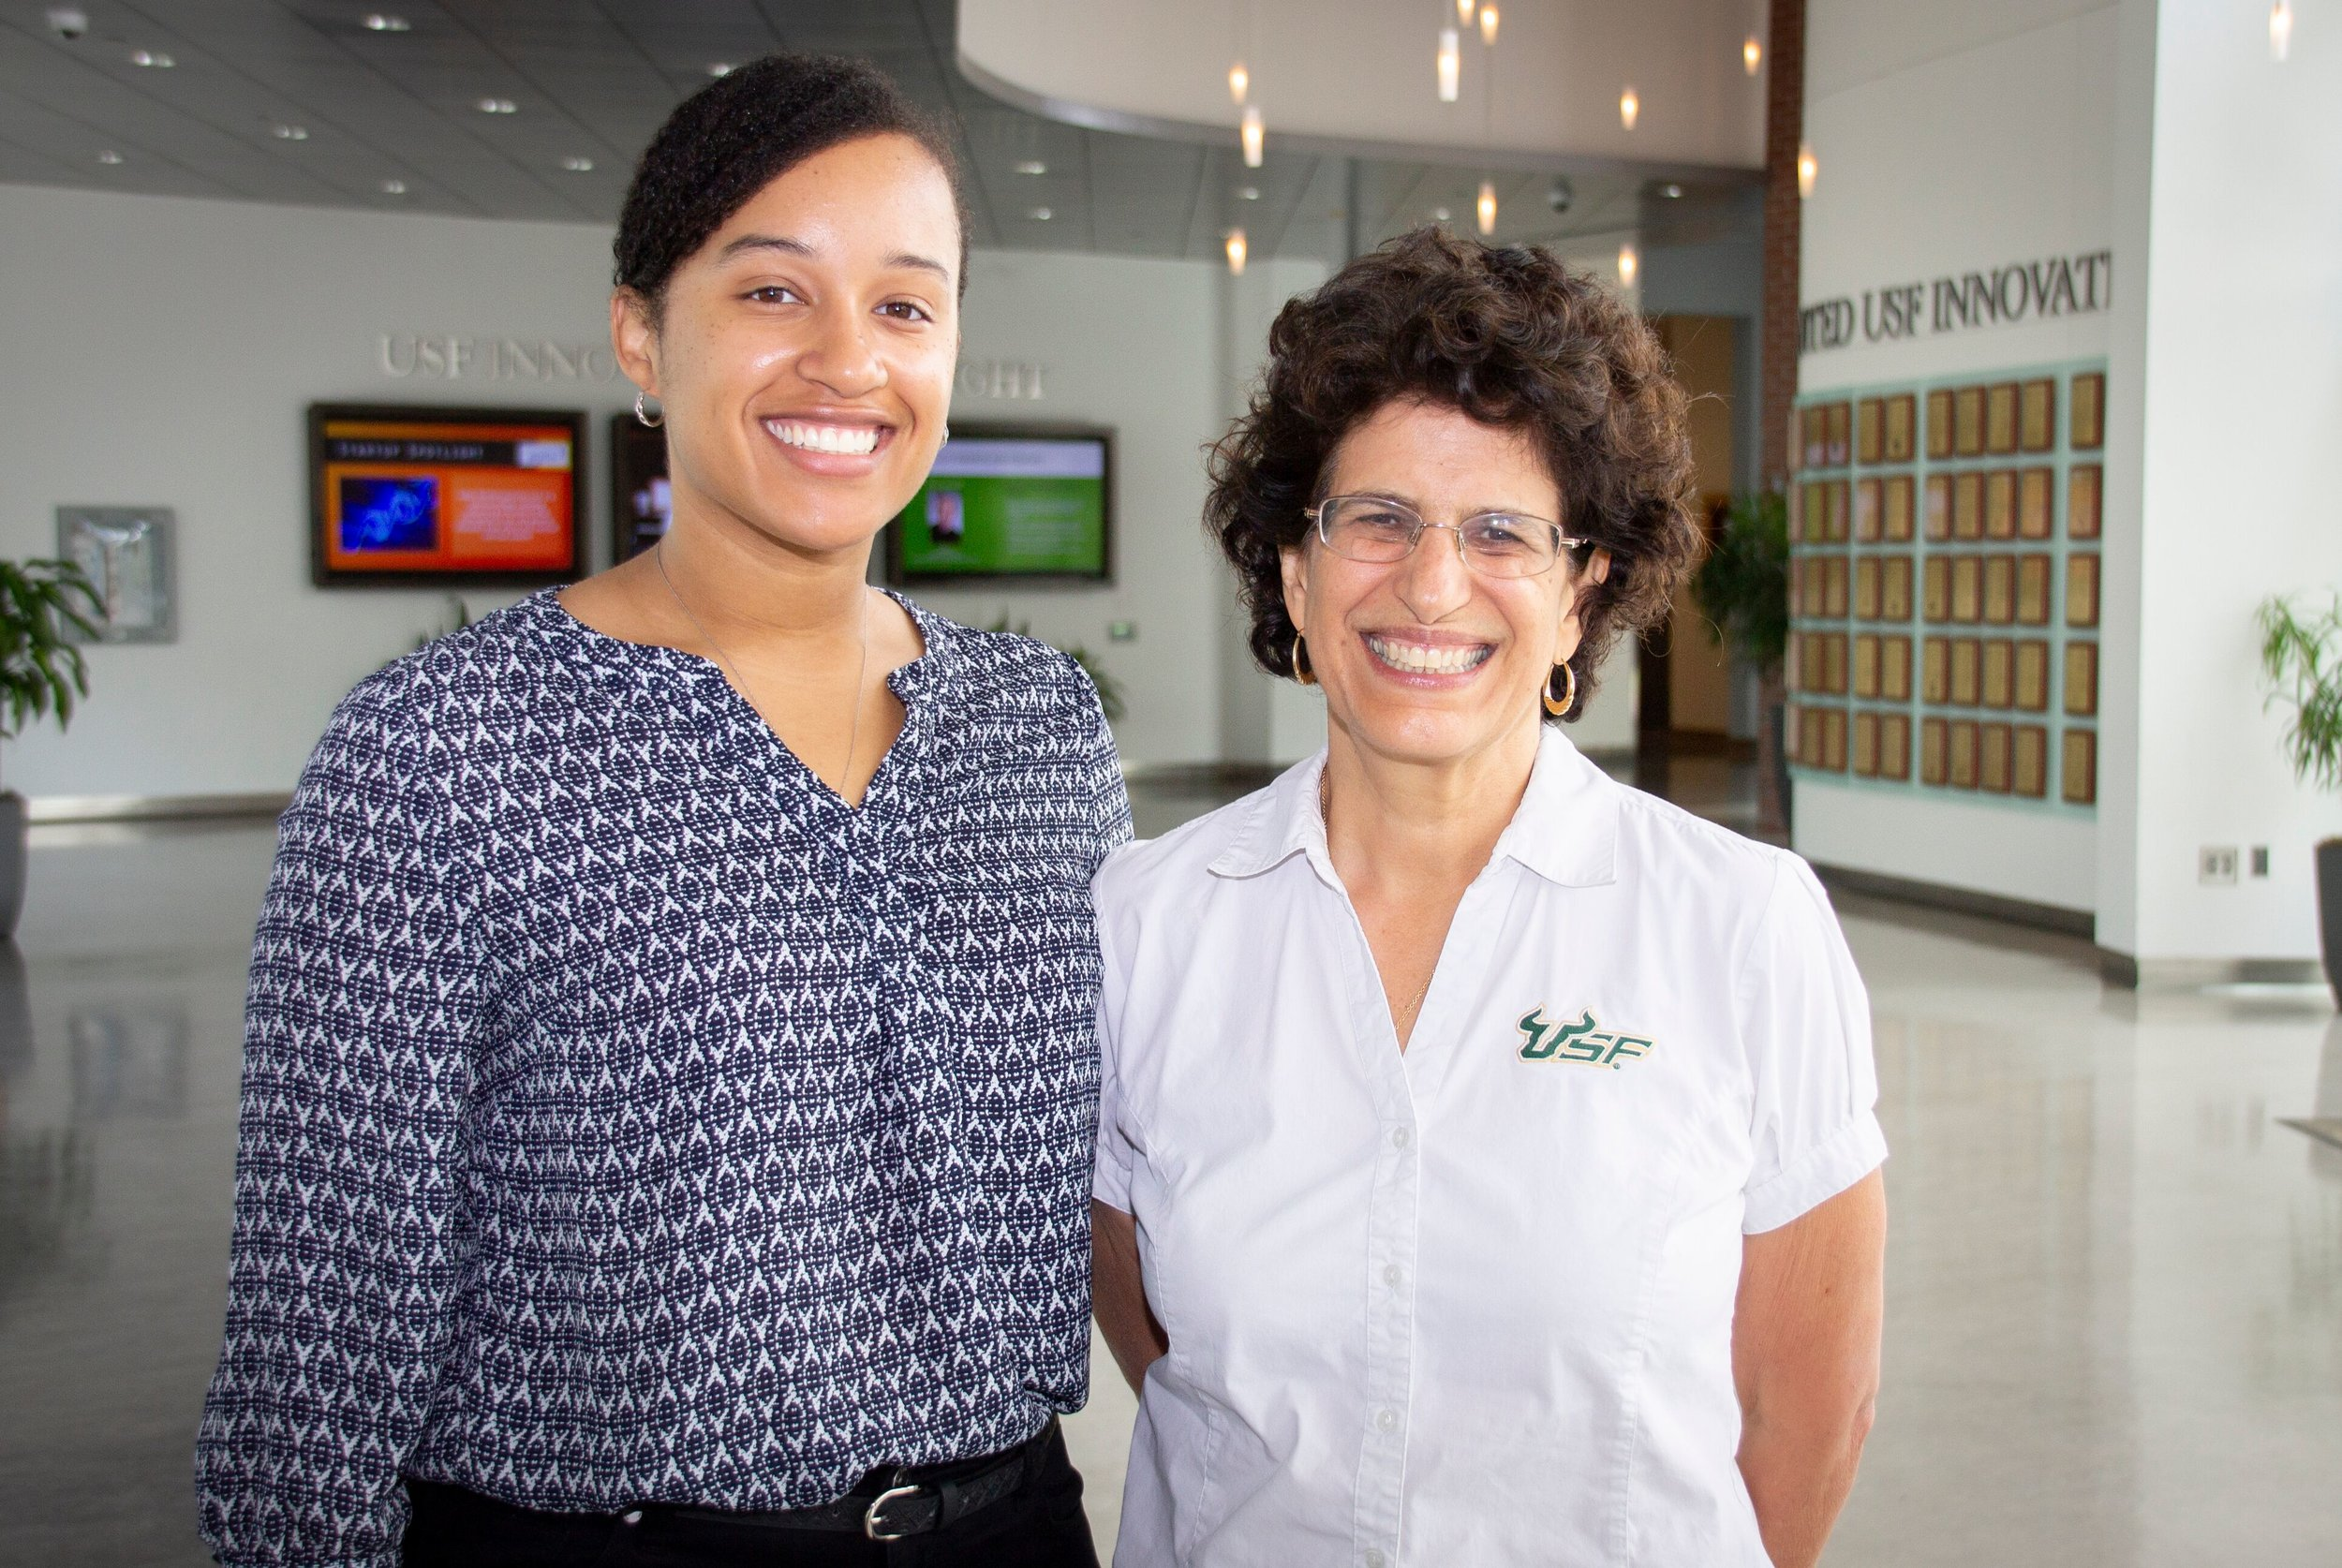 Dr. Ergas and I inside of the University of South Florida's Interdisciplinary Research Building where our lab is located